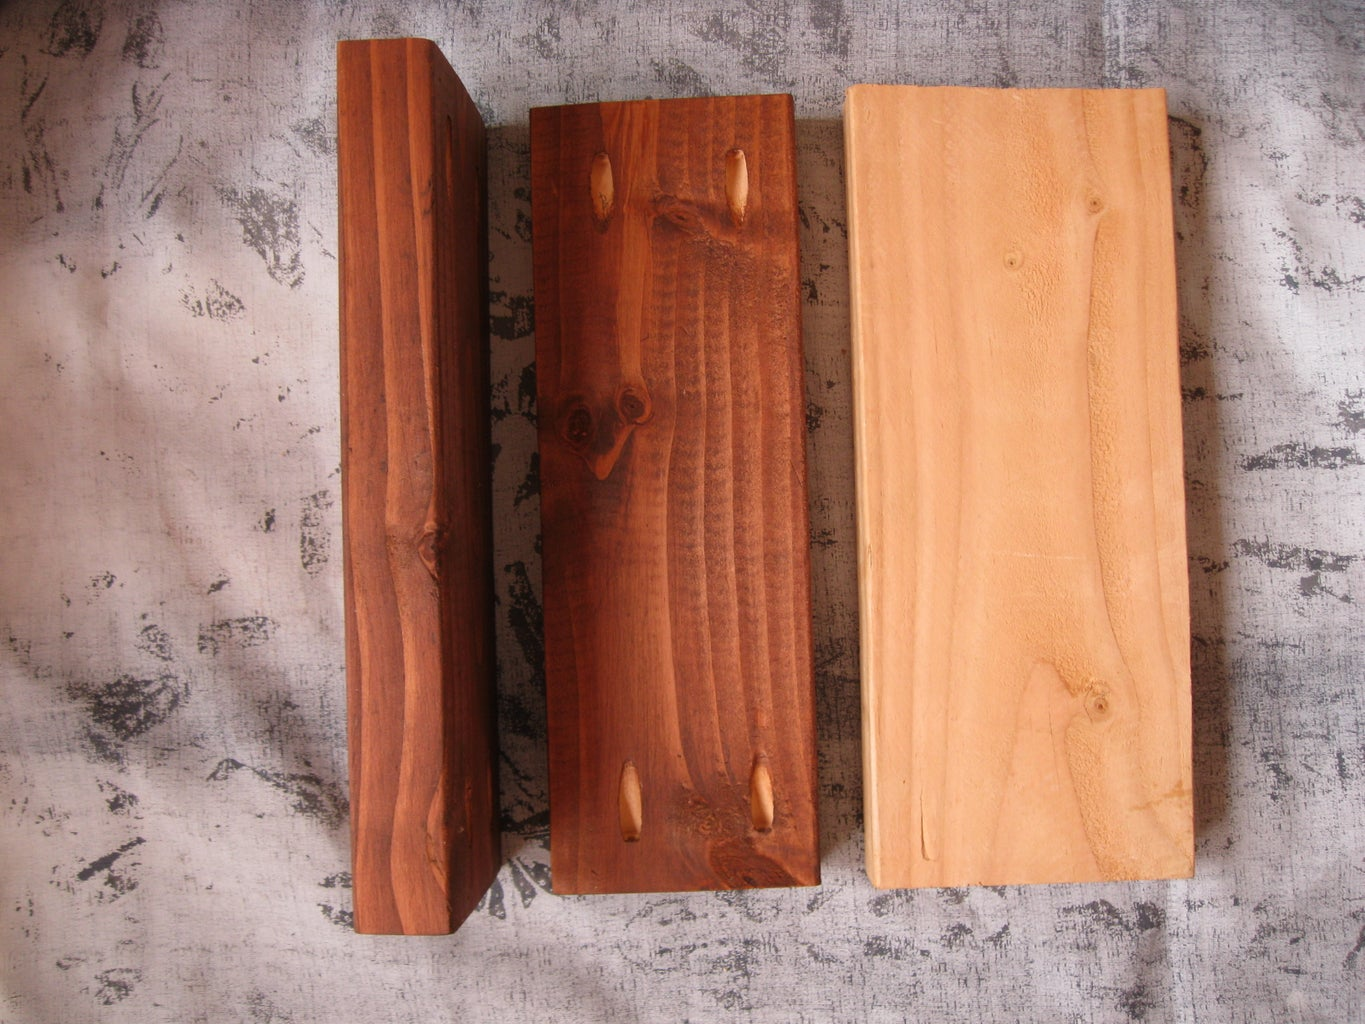 Staining and Decorative Motifs